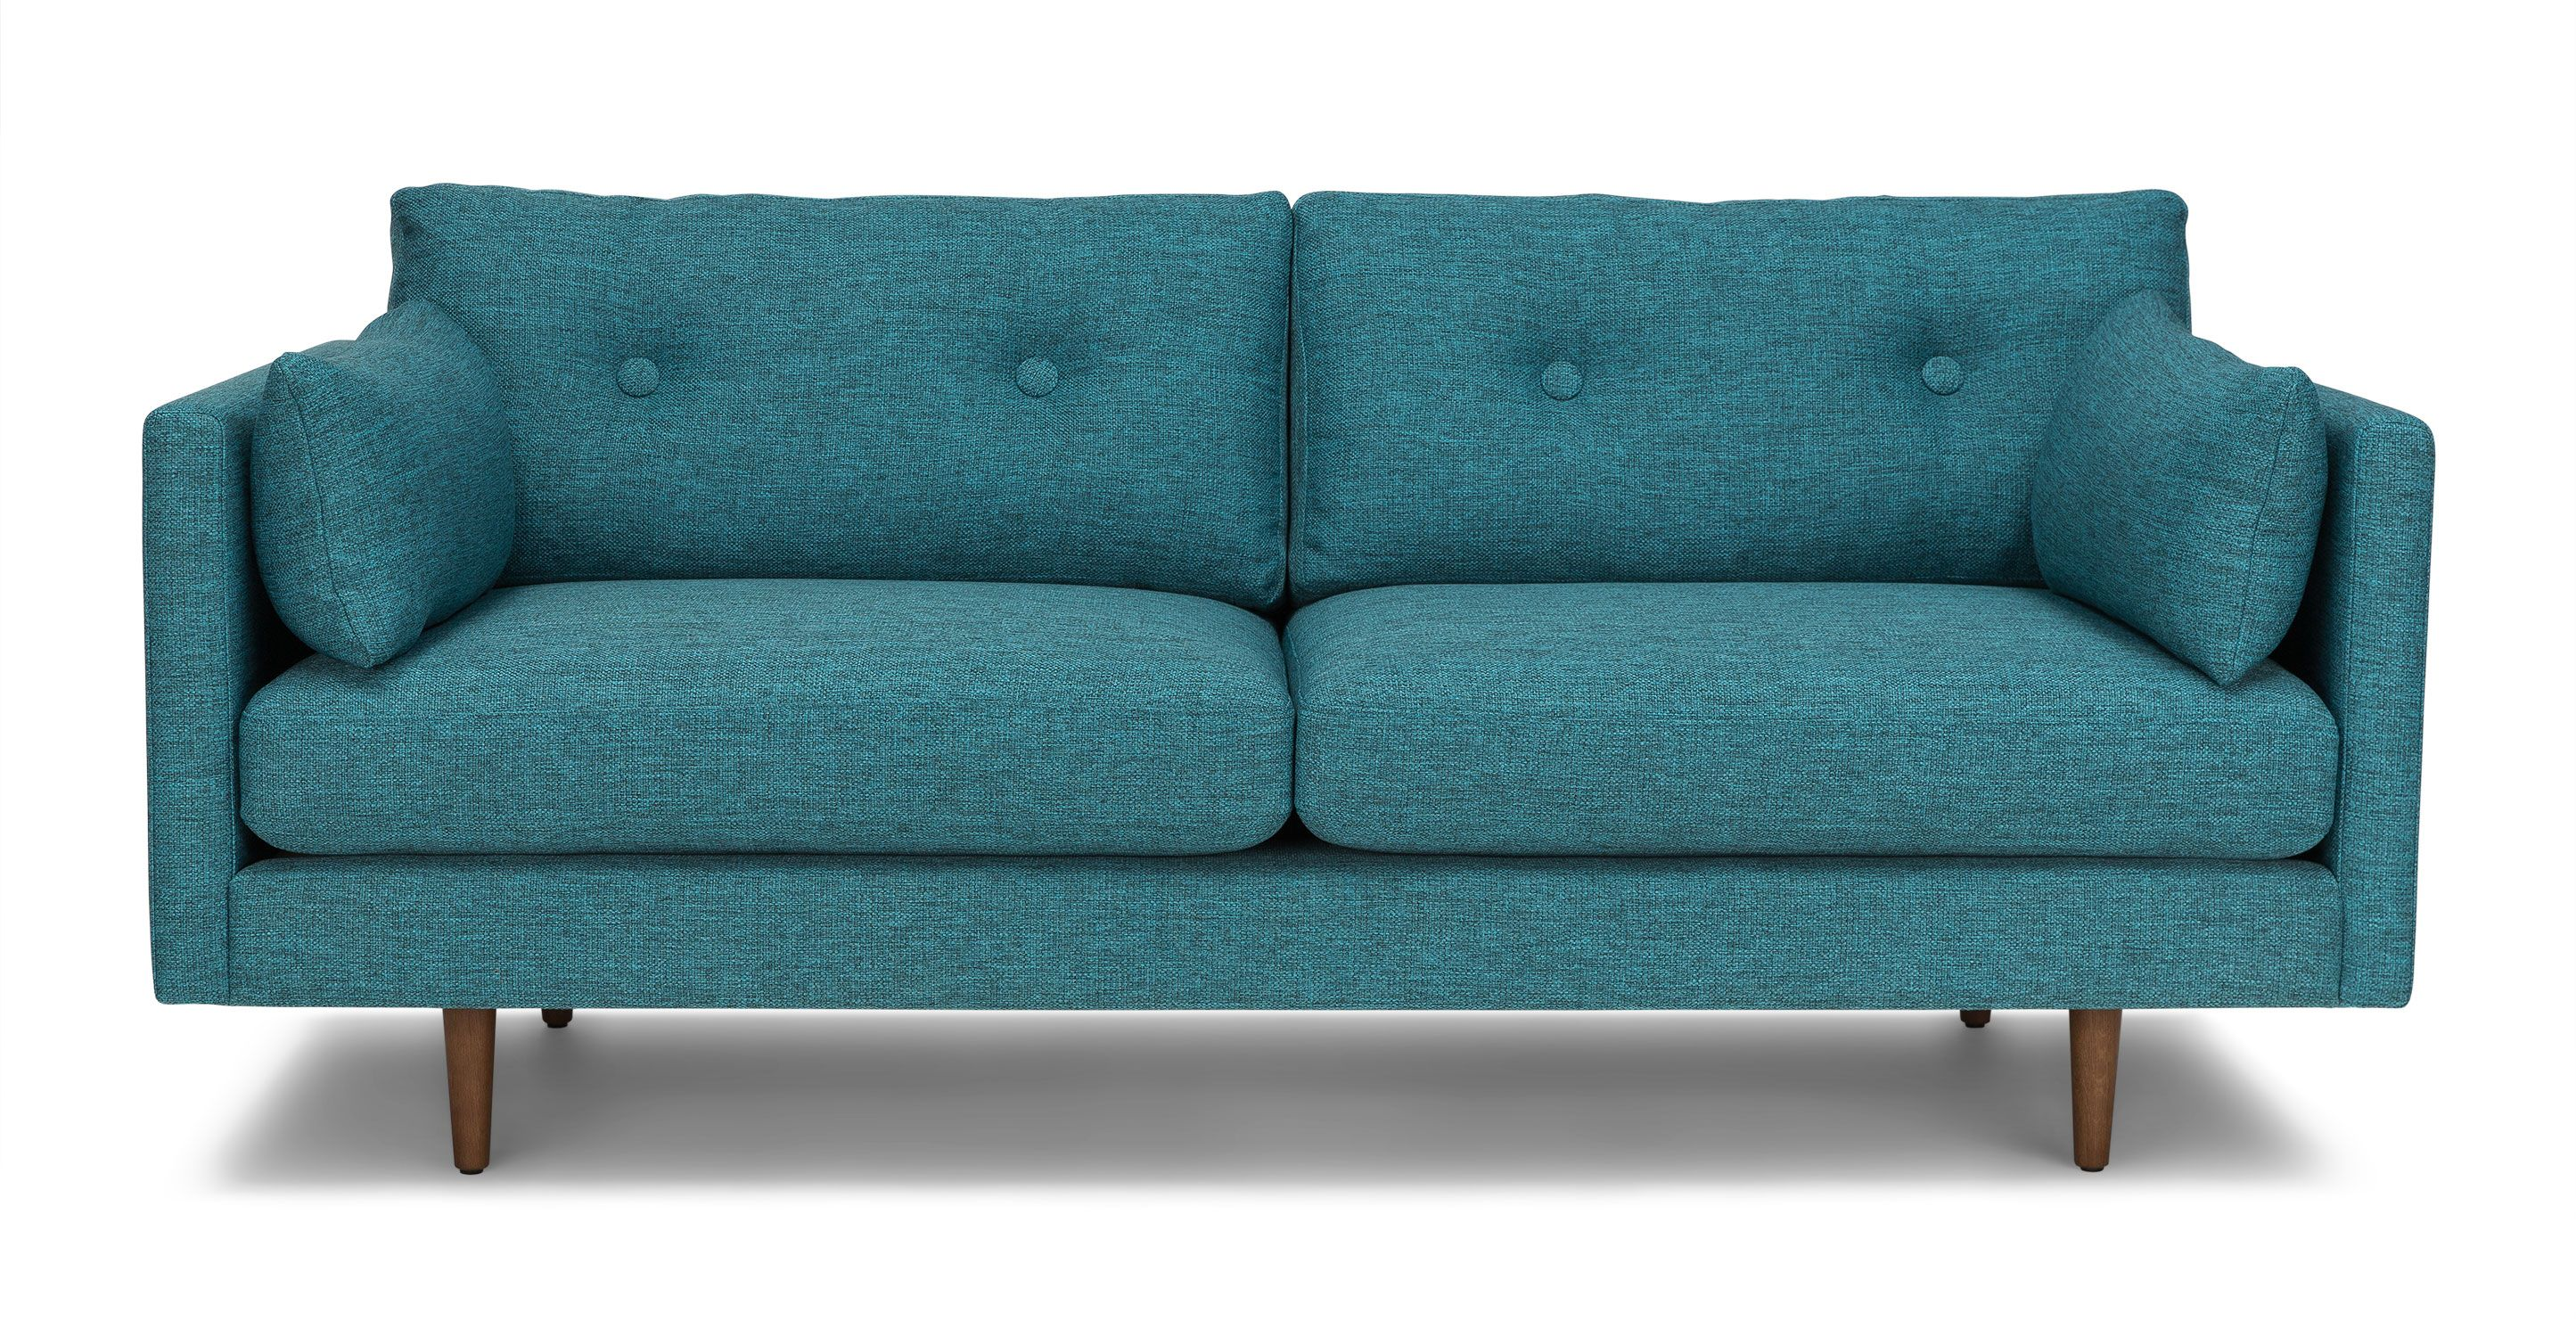 Turquoise Tufted Sofa Solid Wood Legs